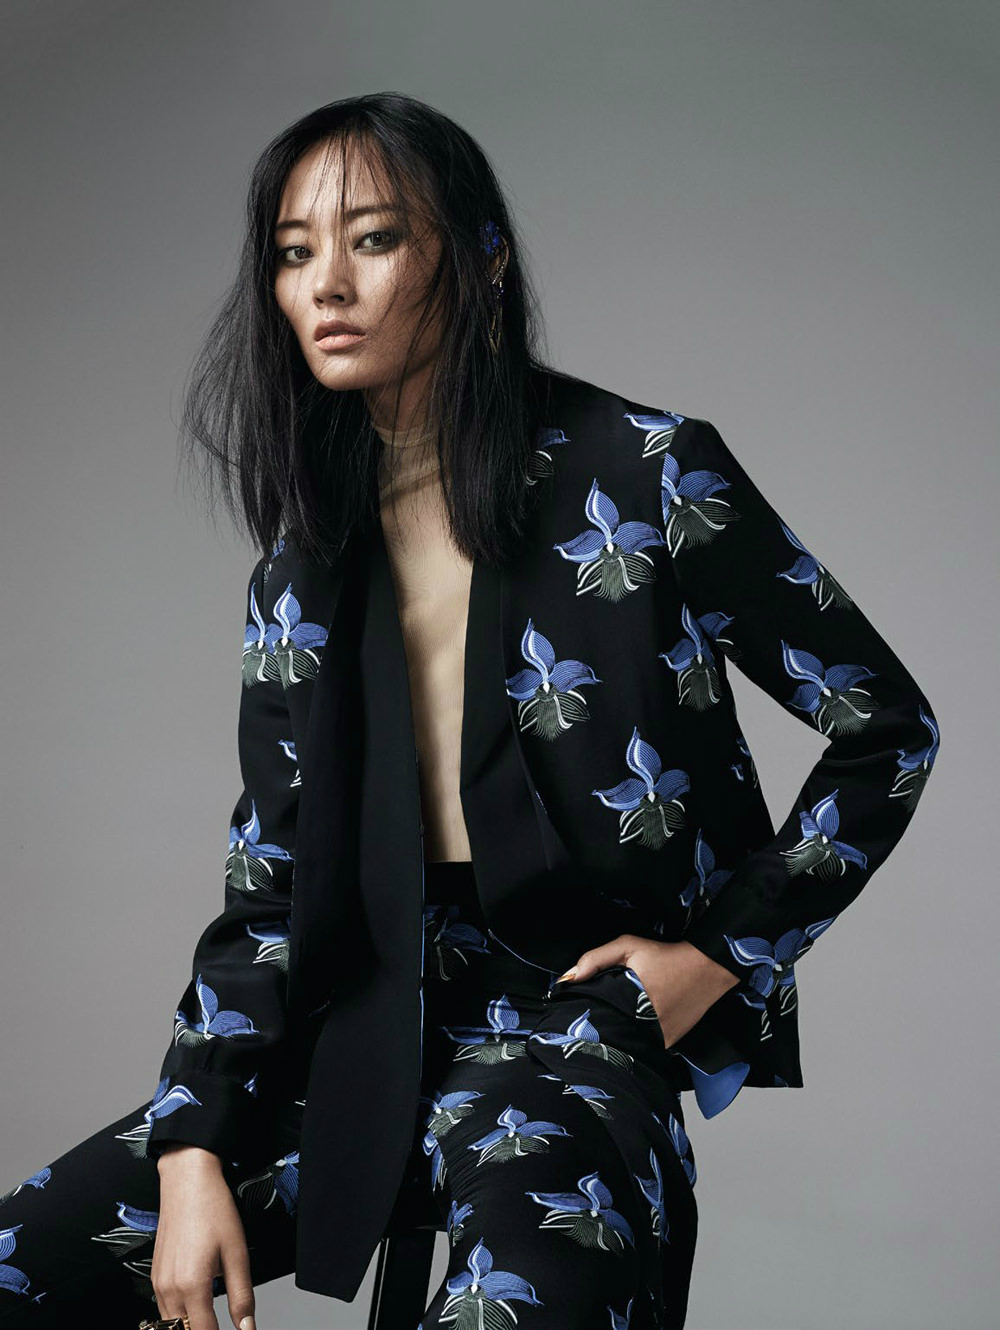 bjarne-jonasson-li-xiao-xing-elle-uk-march-2015-9.jpg